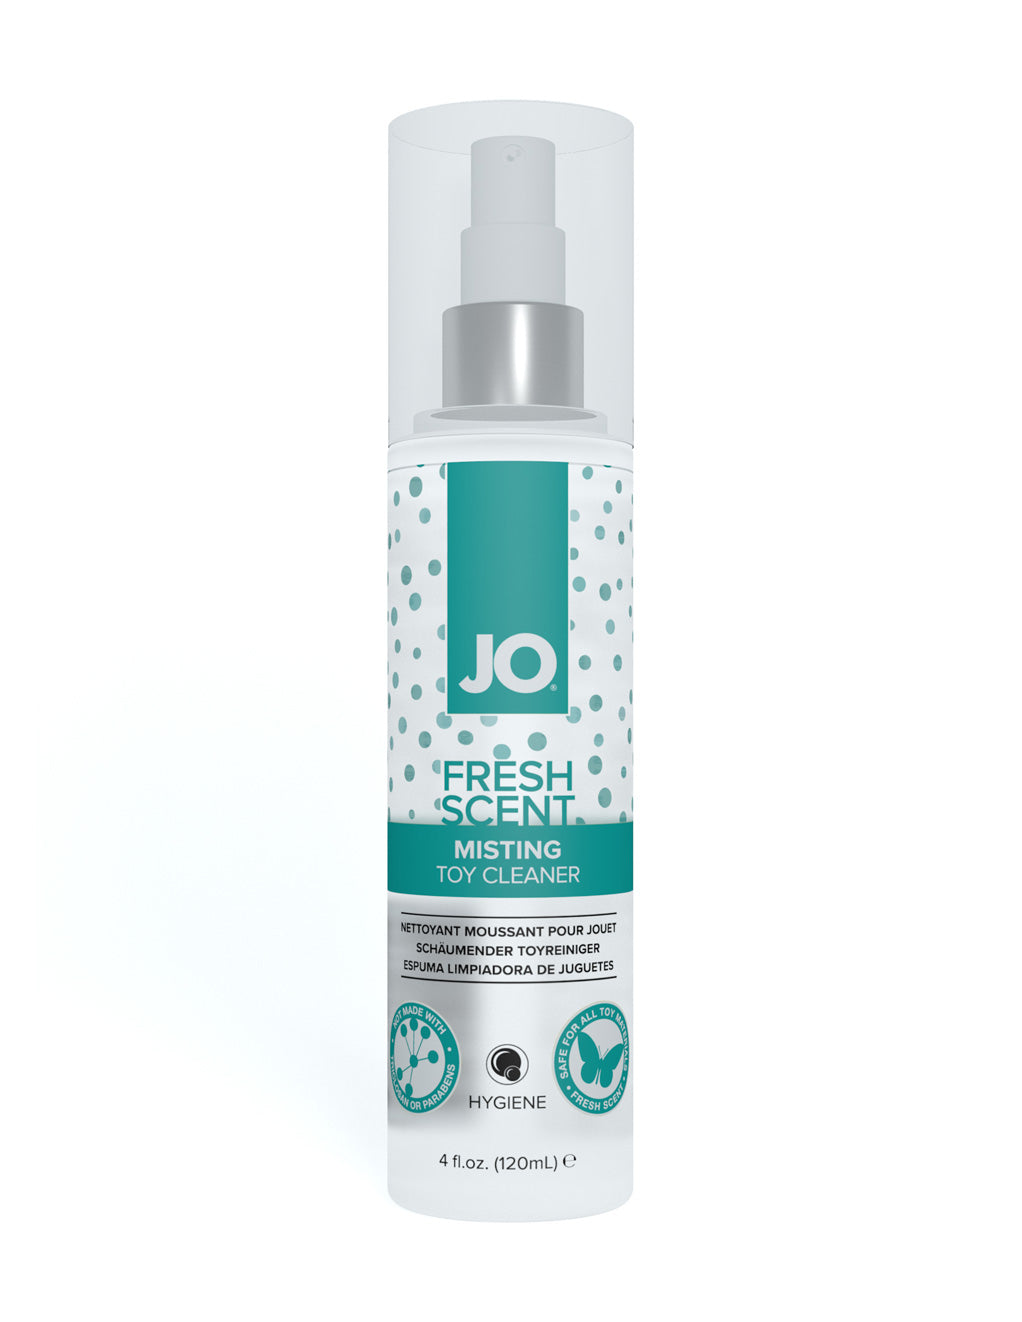 JO Fresh Scent Misting Toy Cleaner Front